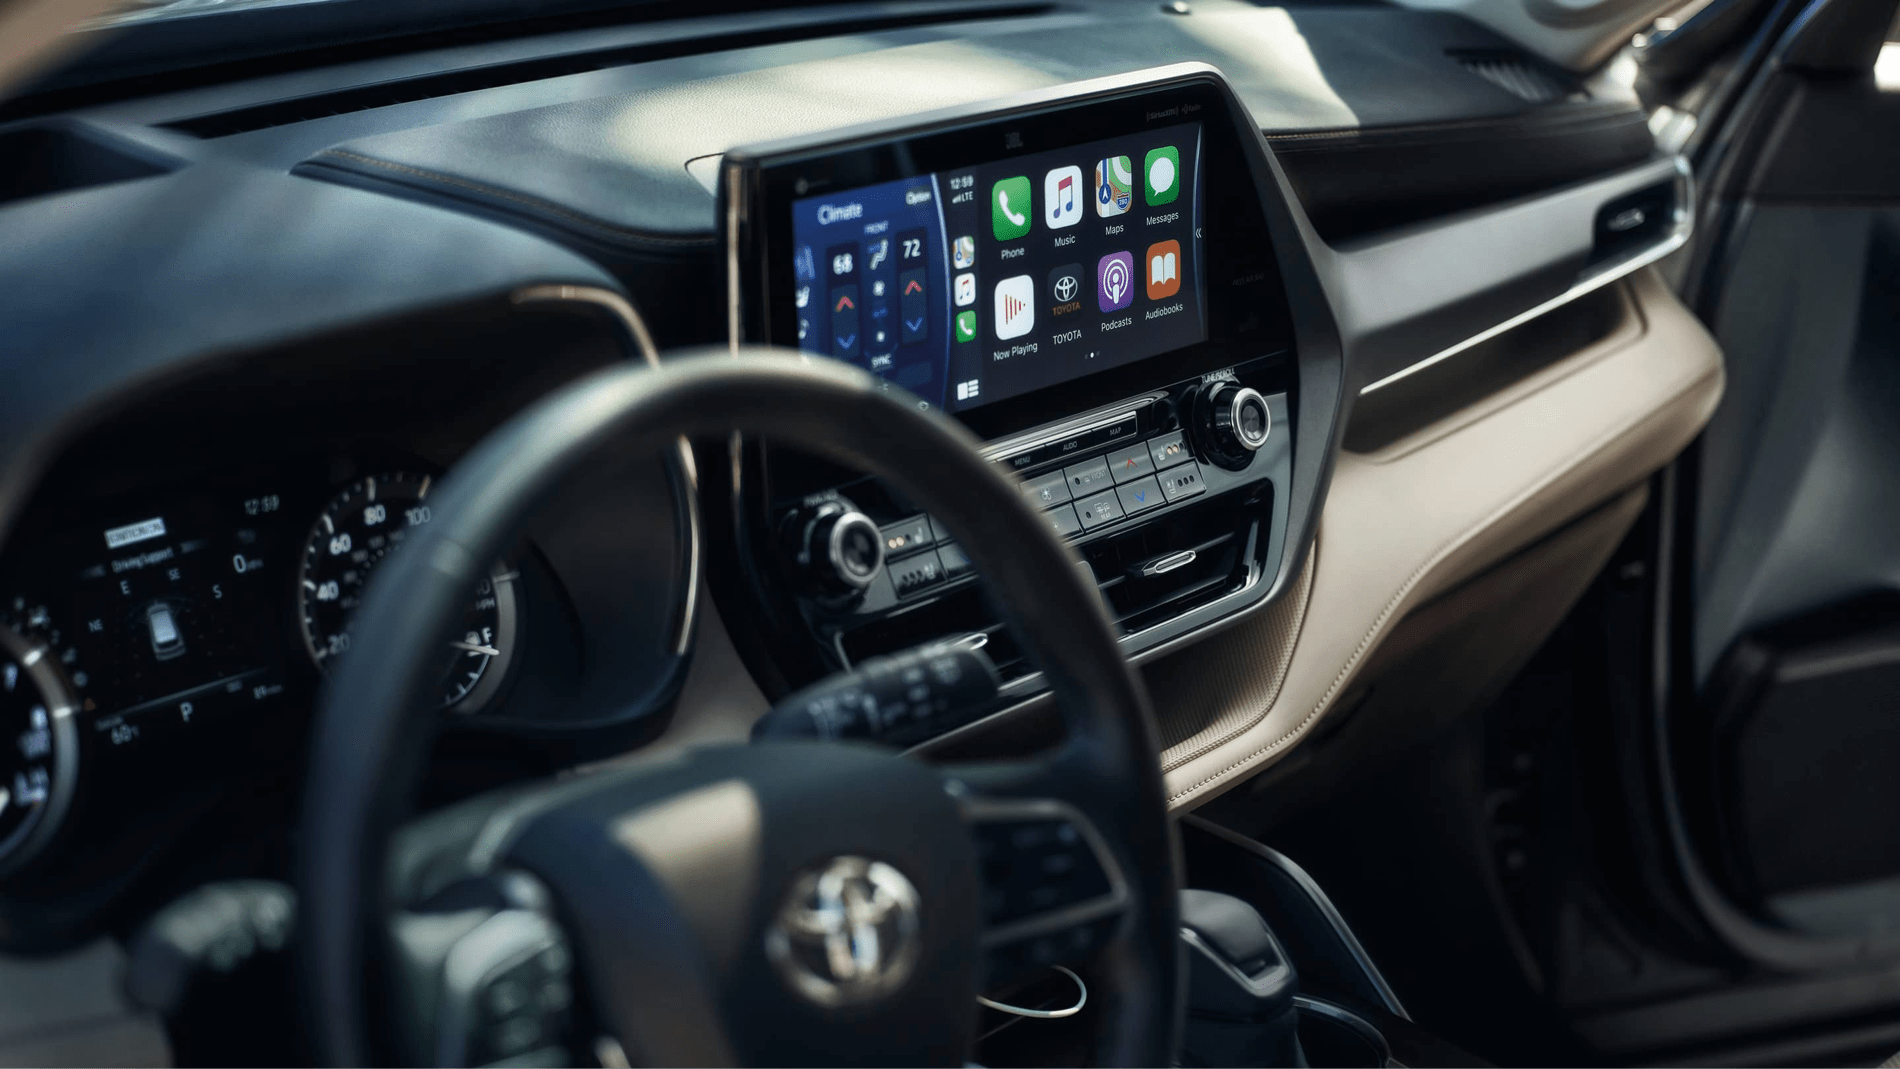 2020 Highlander electronic dashboard